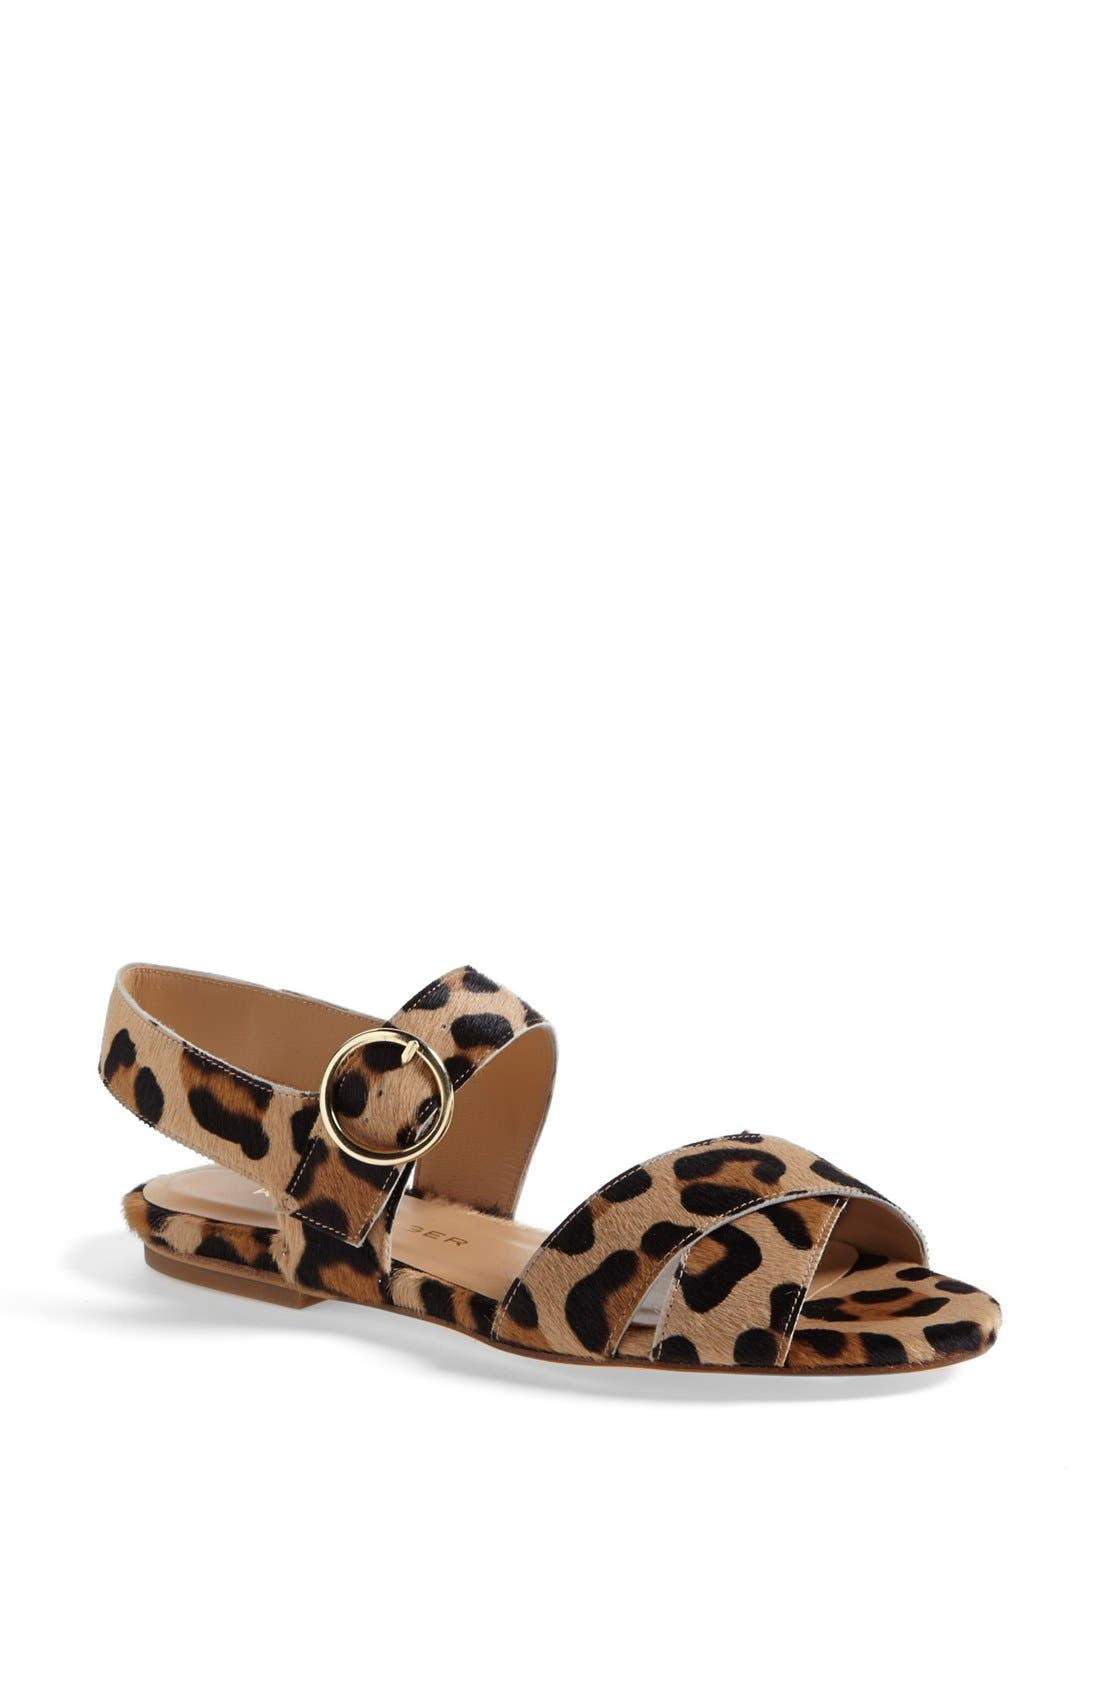 Main Image - Kurt Geiger London 'Dahlia 2' Calf Hair Sandal